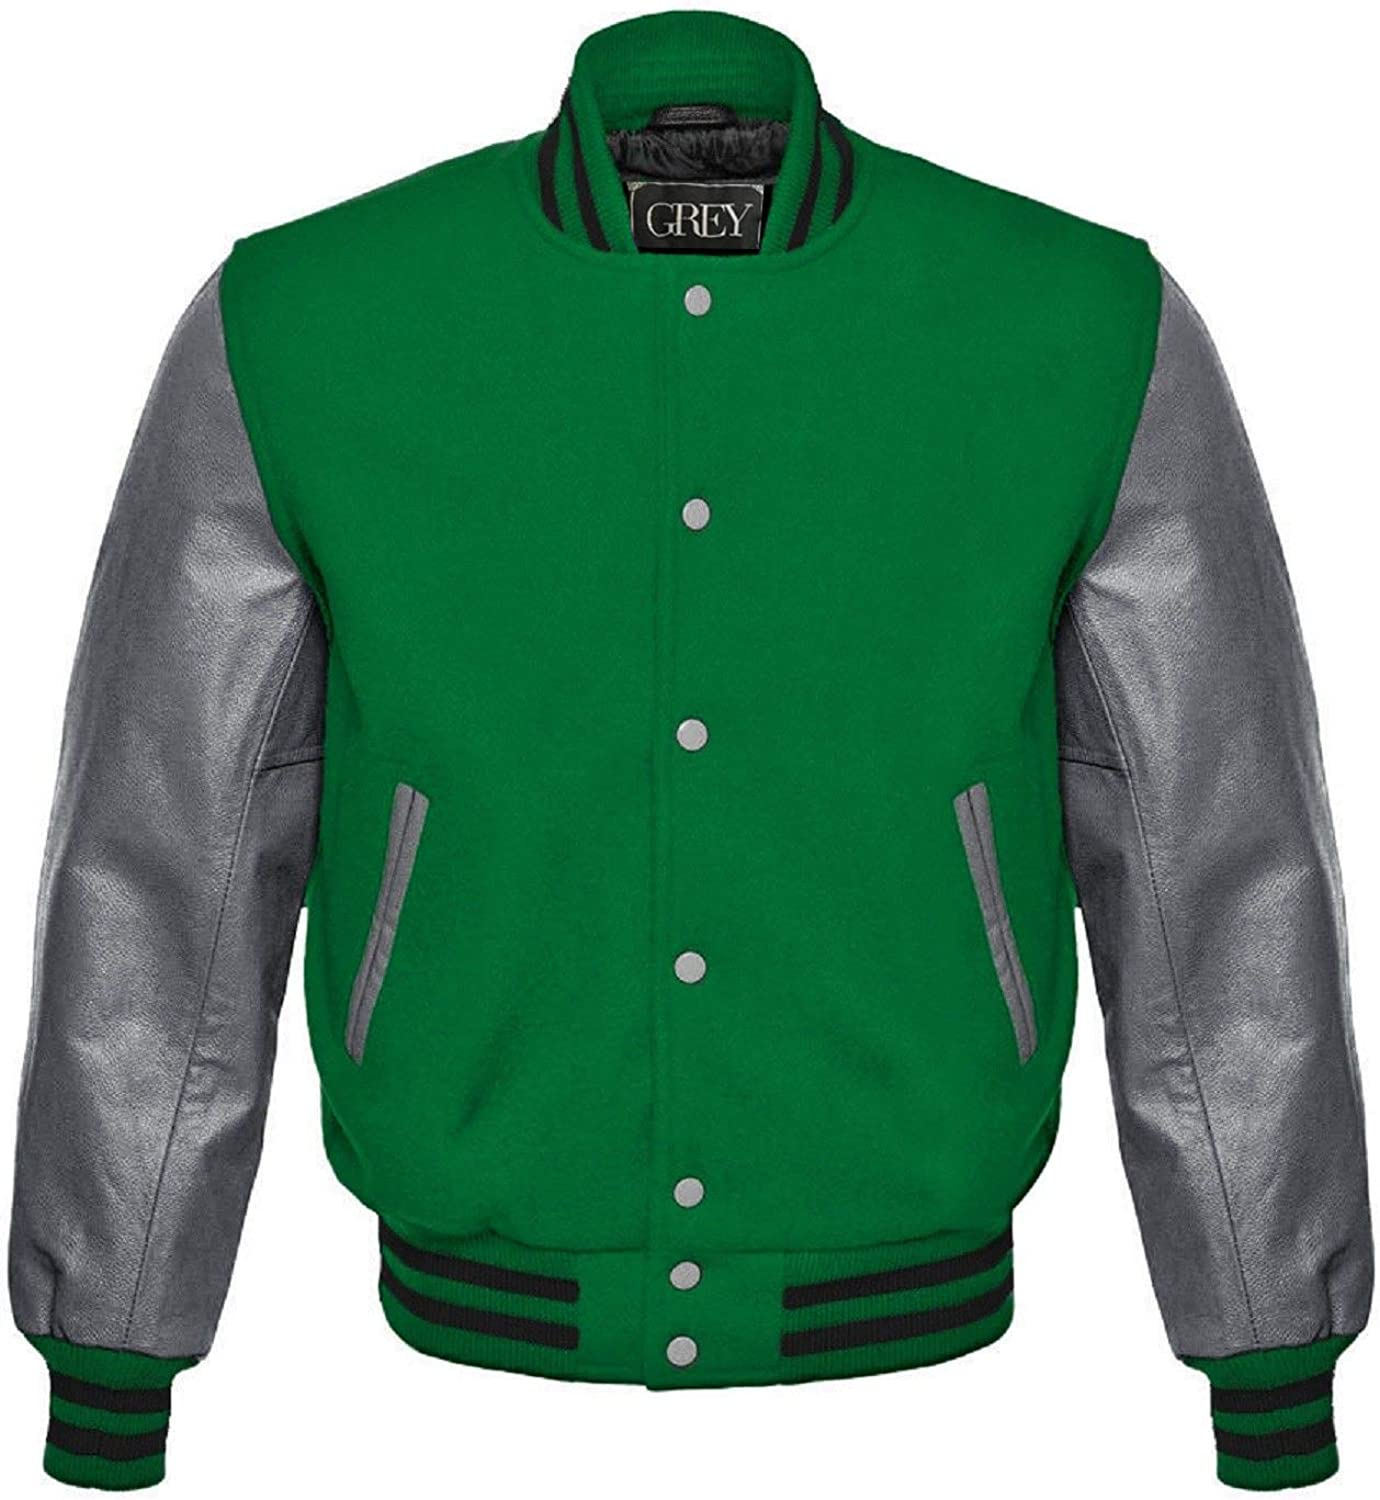 GREY Brand Varsity Jacket, Wool Body with Leather Arms Letterman Baseball Unique & Stylish (7XL) (XS, Royal Blue-White/Red Strips) (5XL, Green-Grey)